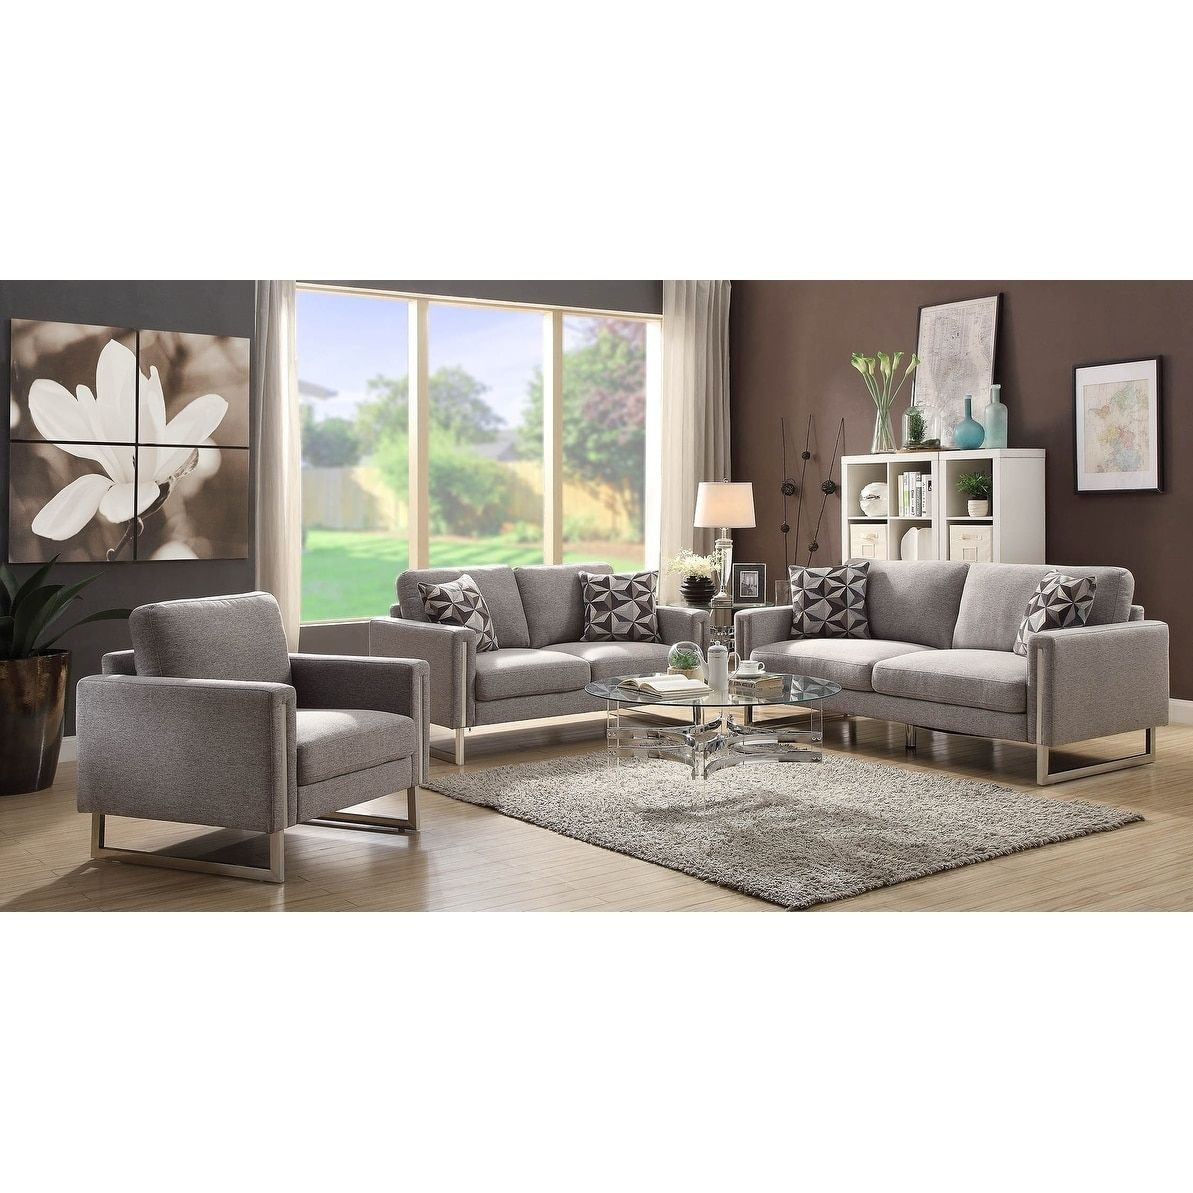 Yardley Contemporary Grey Chair Metal Modern Living Room Set